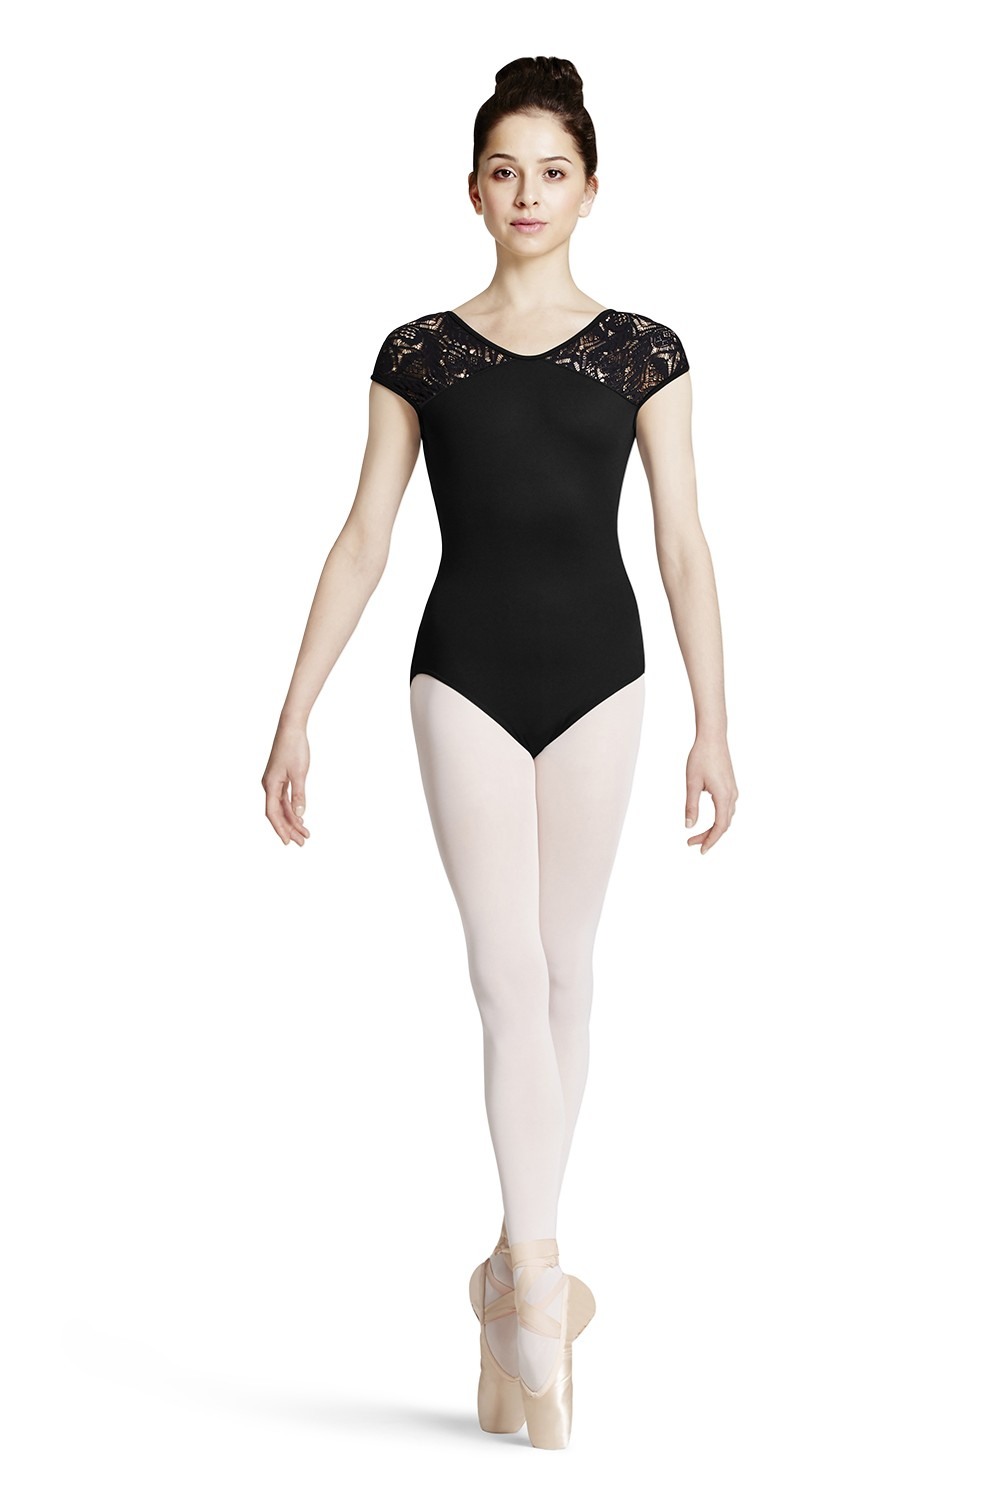 Body Con Maniche Ad Aletta A Piume Di Pavone Women's Dance Leotards